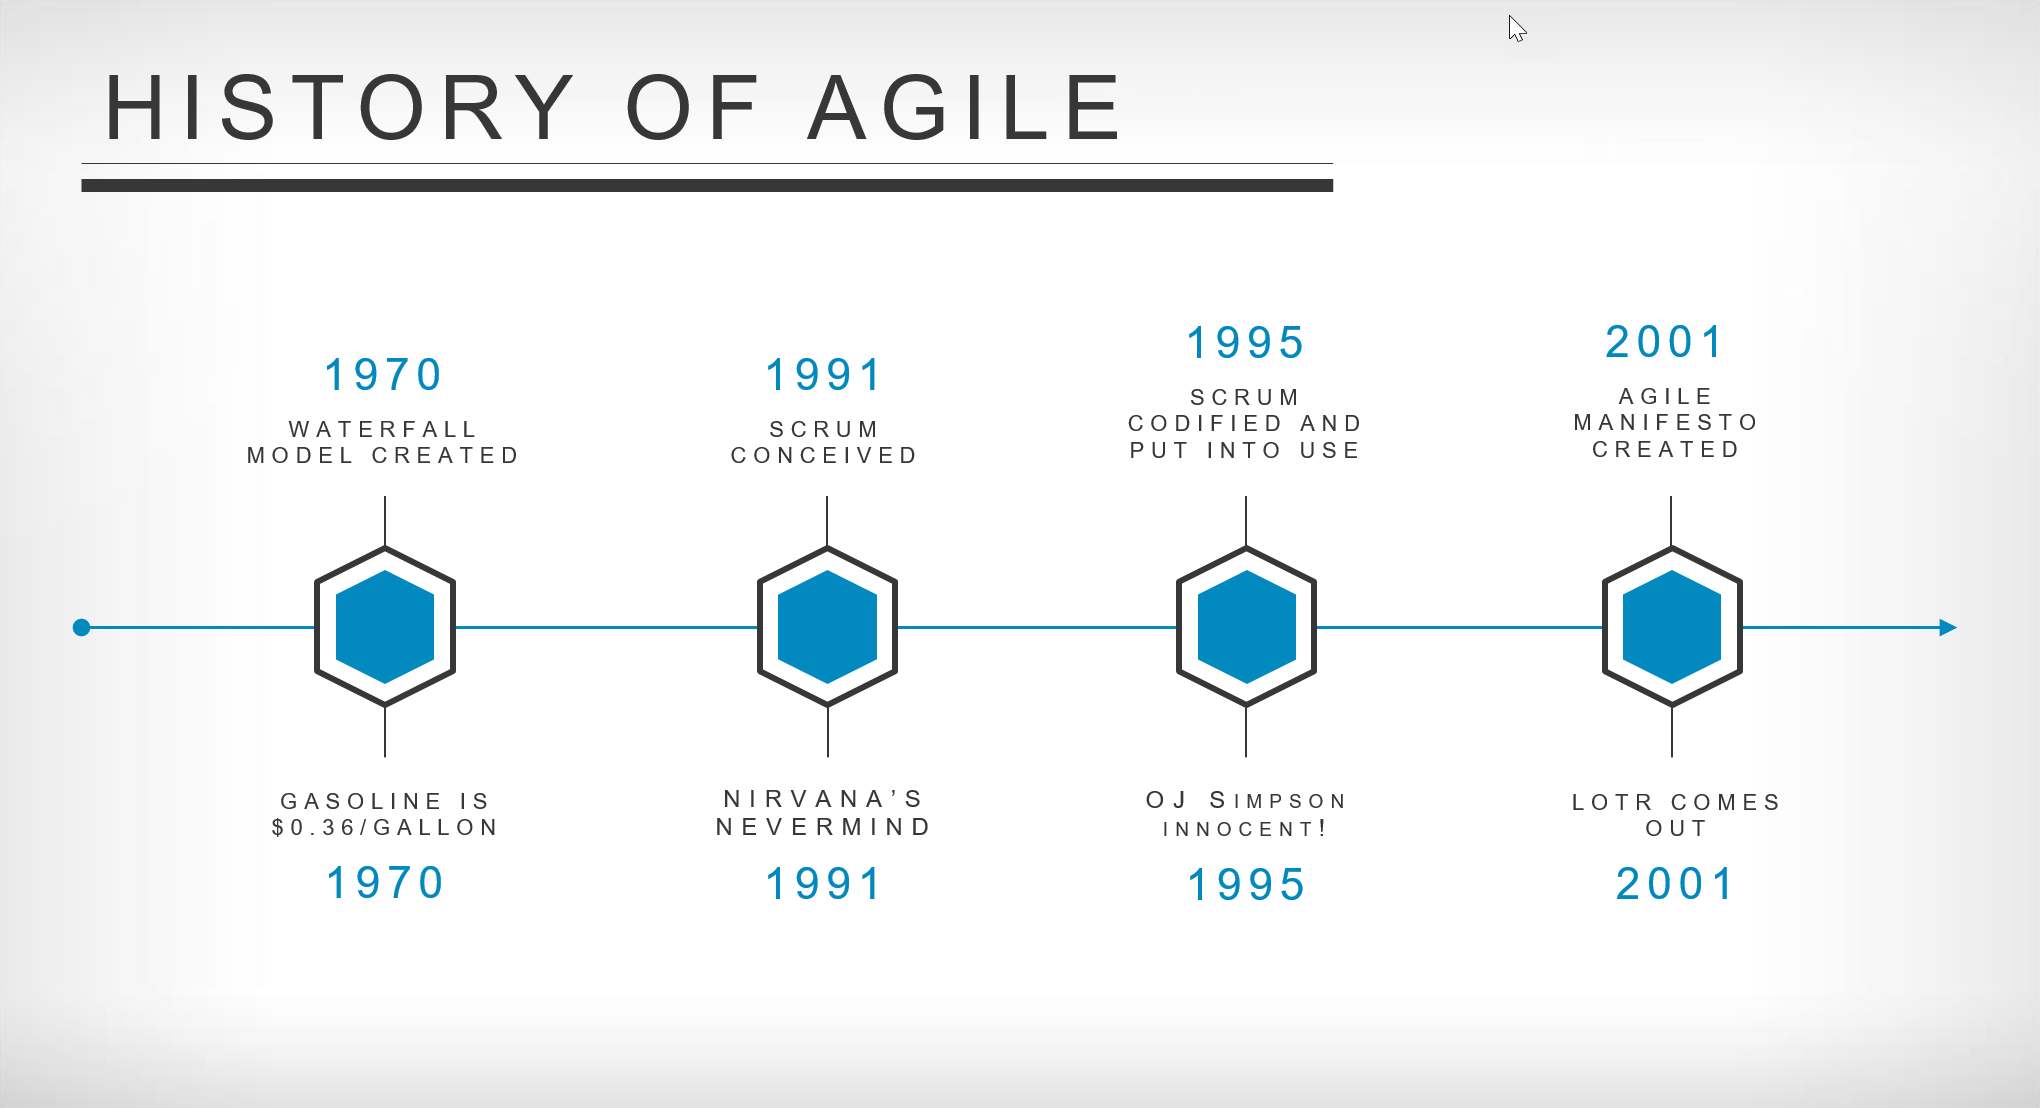 history-of-agile-timeline